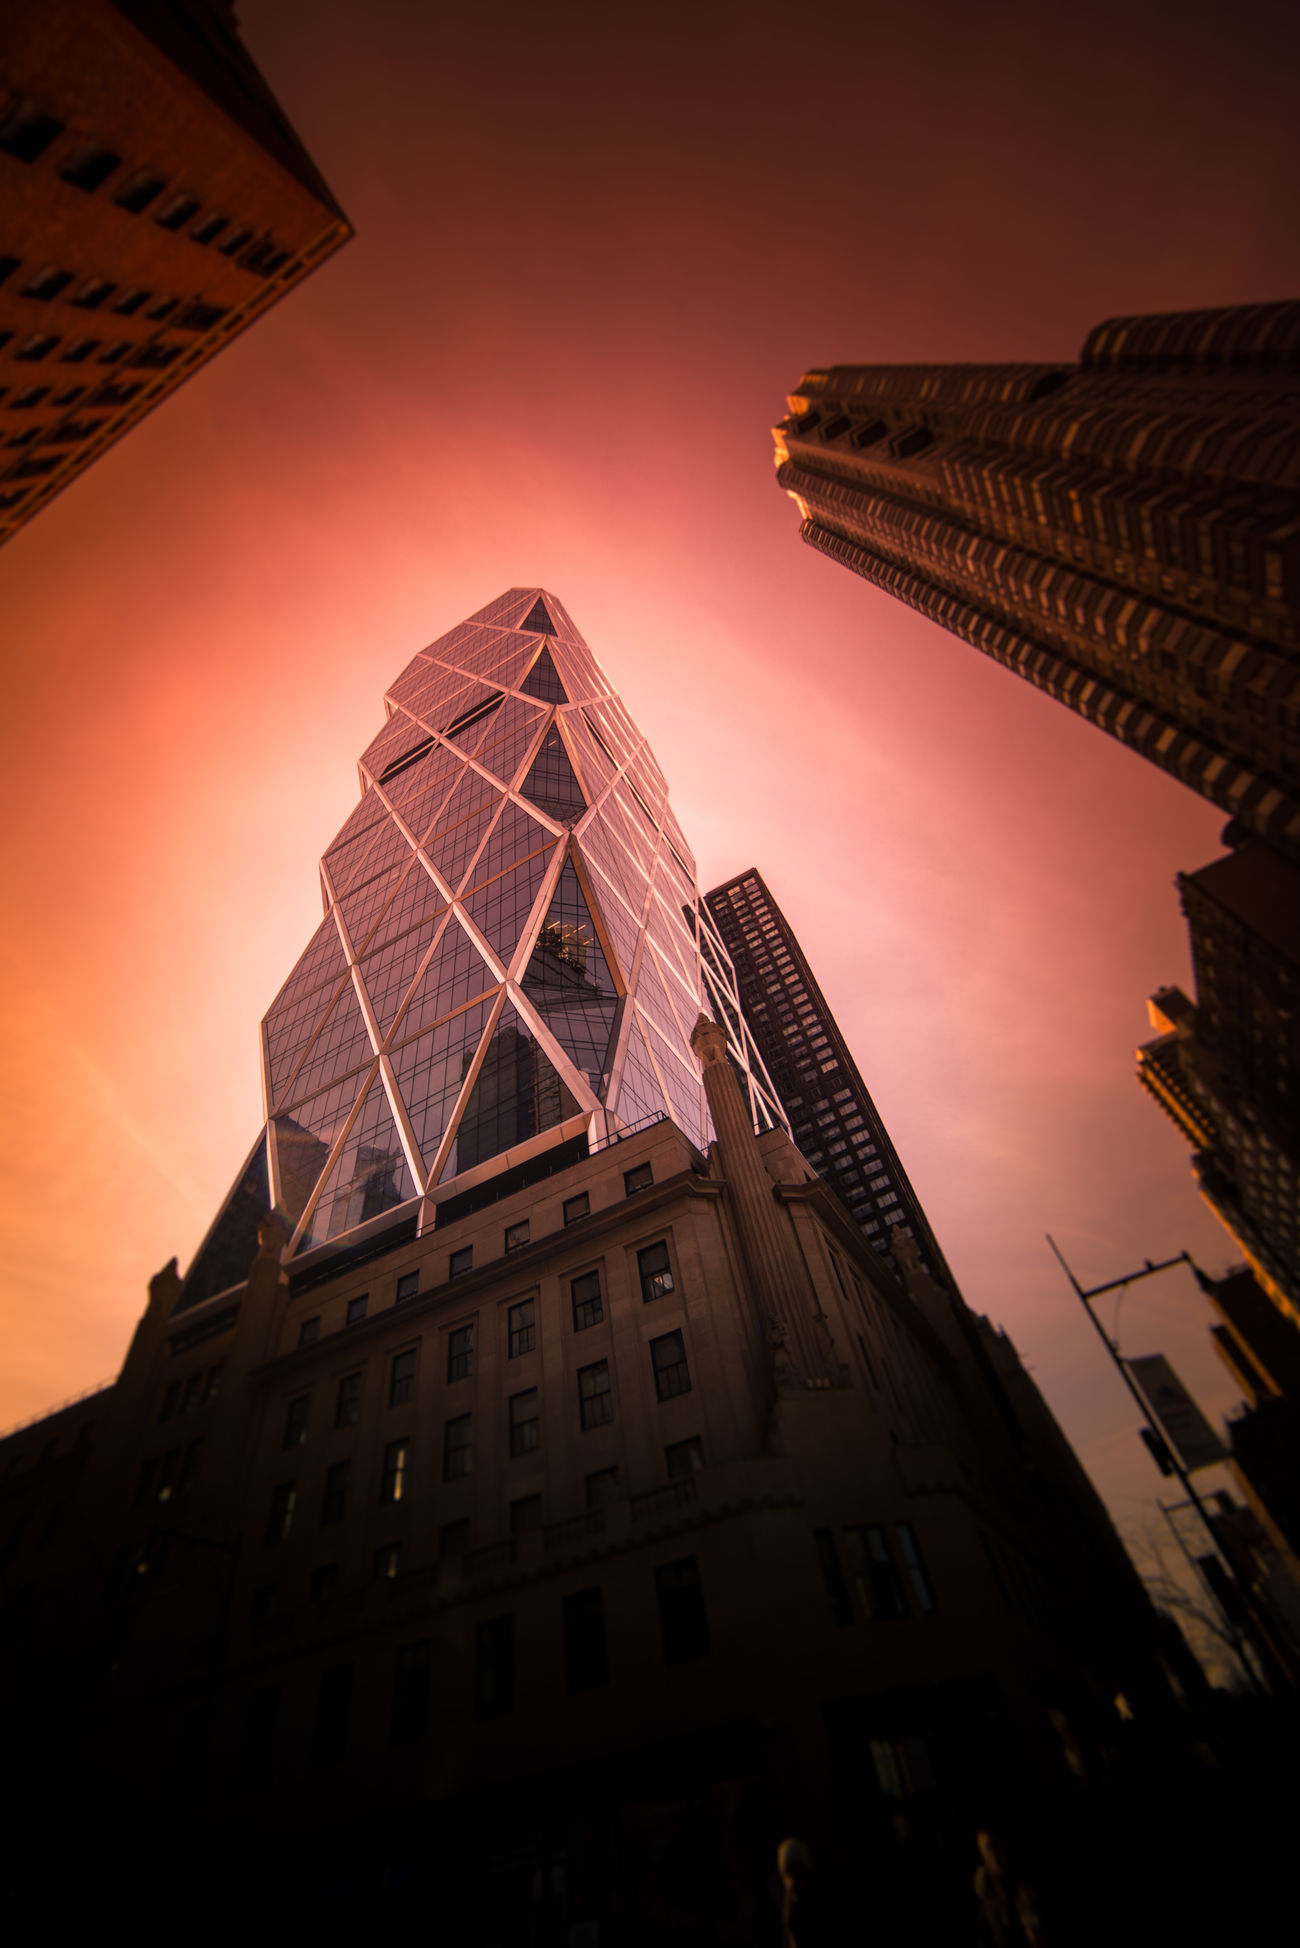 Rise Architecture Building Exterior Built Structure City Cityscape Day Hot Low Angle View Modern No People Outdoors Sky Skyscraper Sunset Tall Tower Travel Destinations